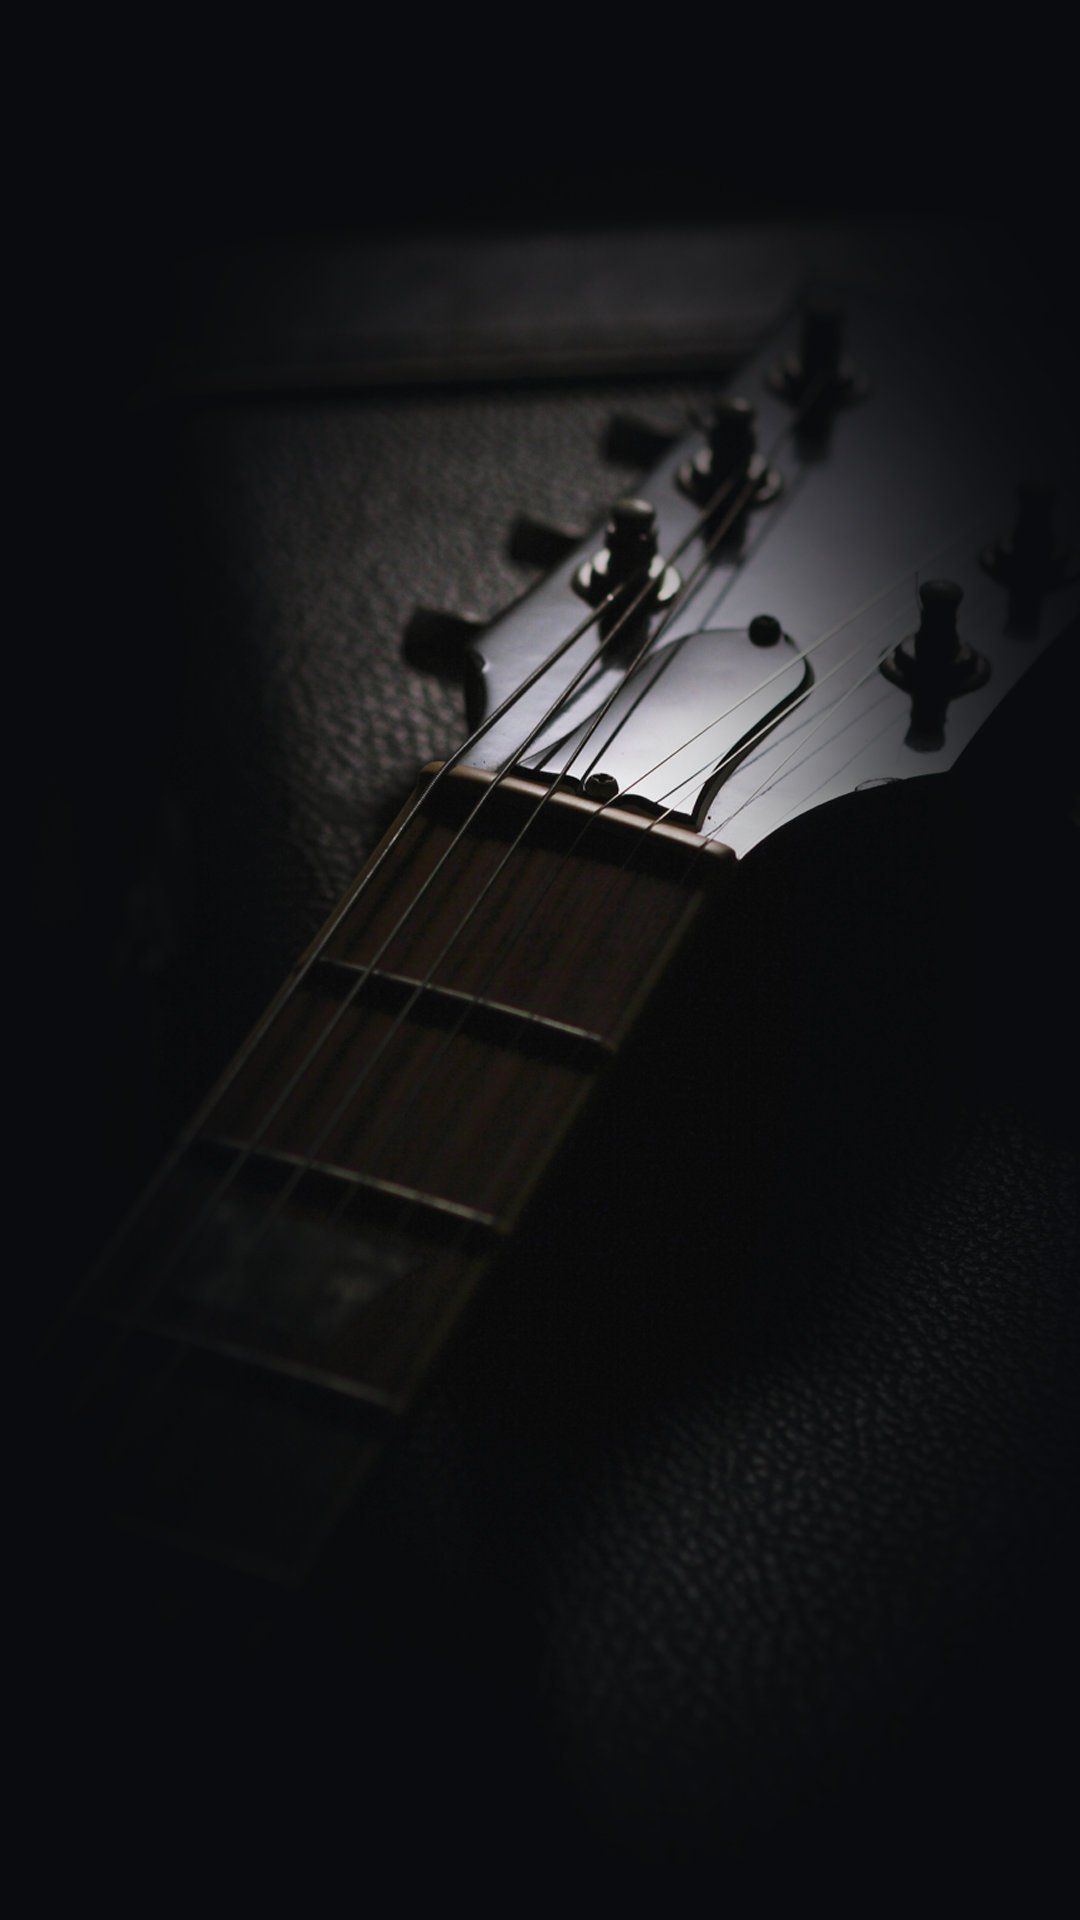 Guitar Smartphone Wallpapers Top Free Guitar Smartphone